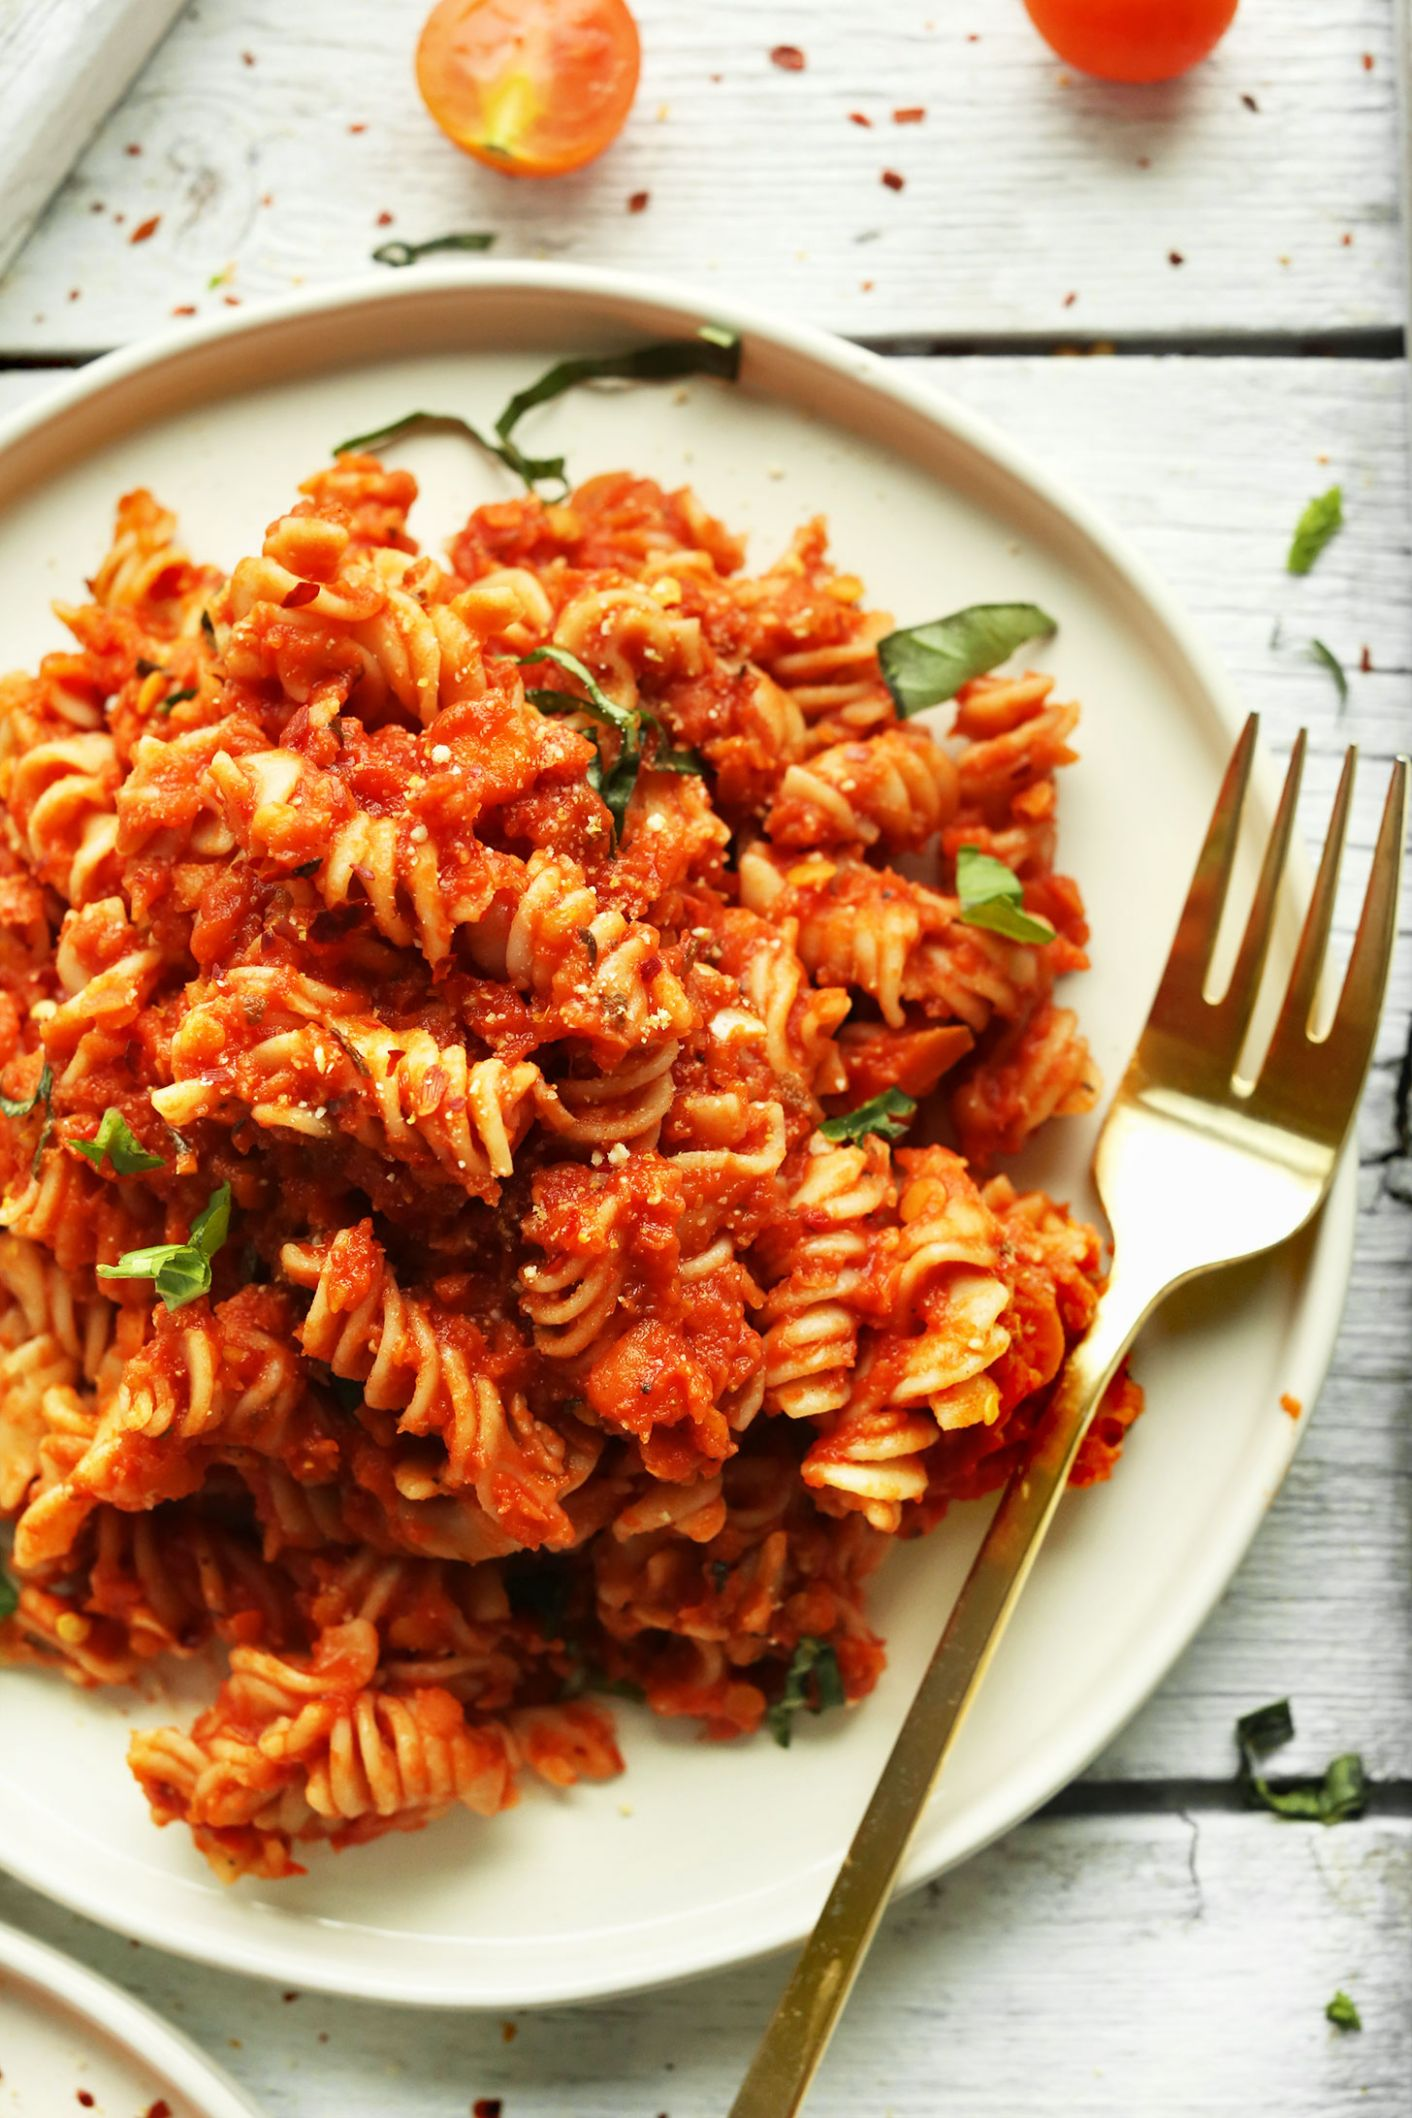 Spicy Red Pasta with Lentils